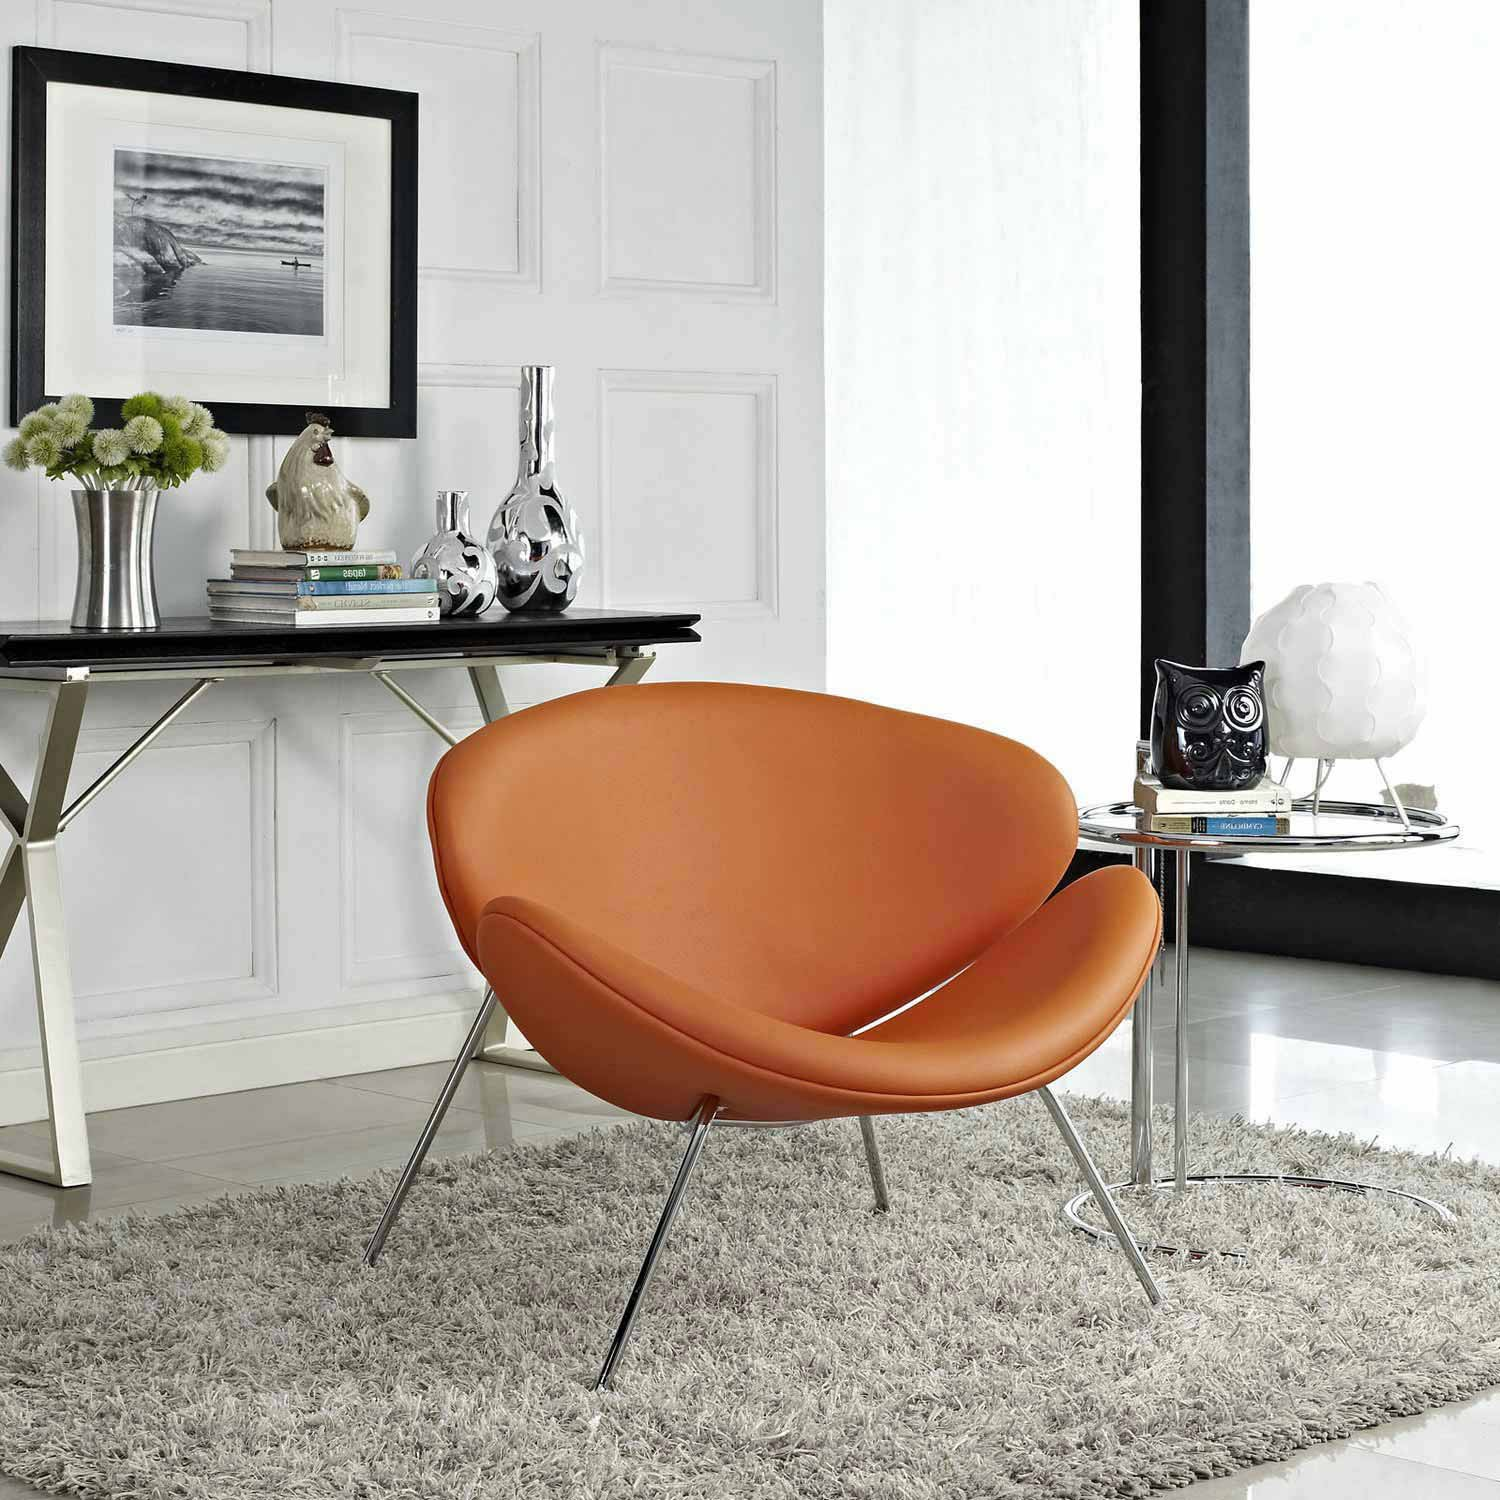 Modway Nutshell Lounge Chair - Orange